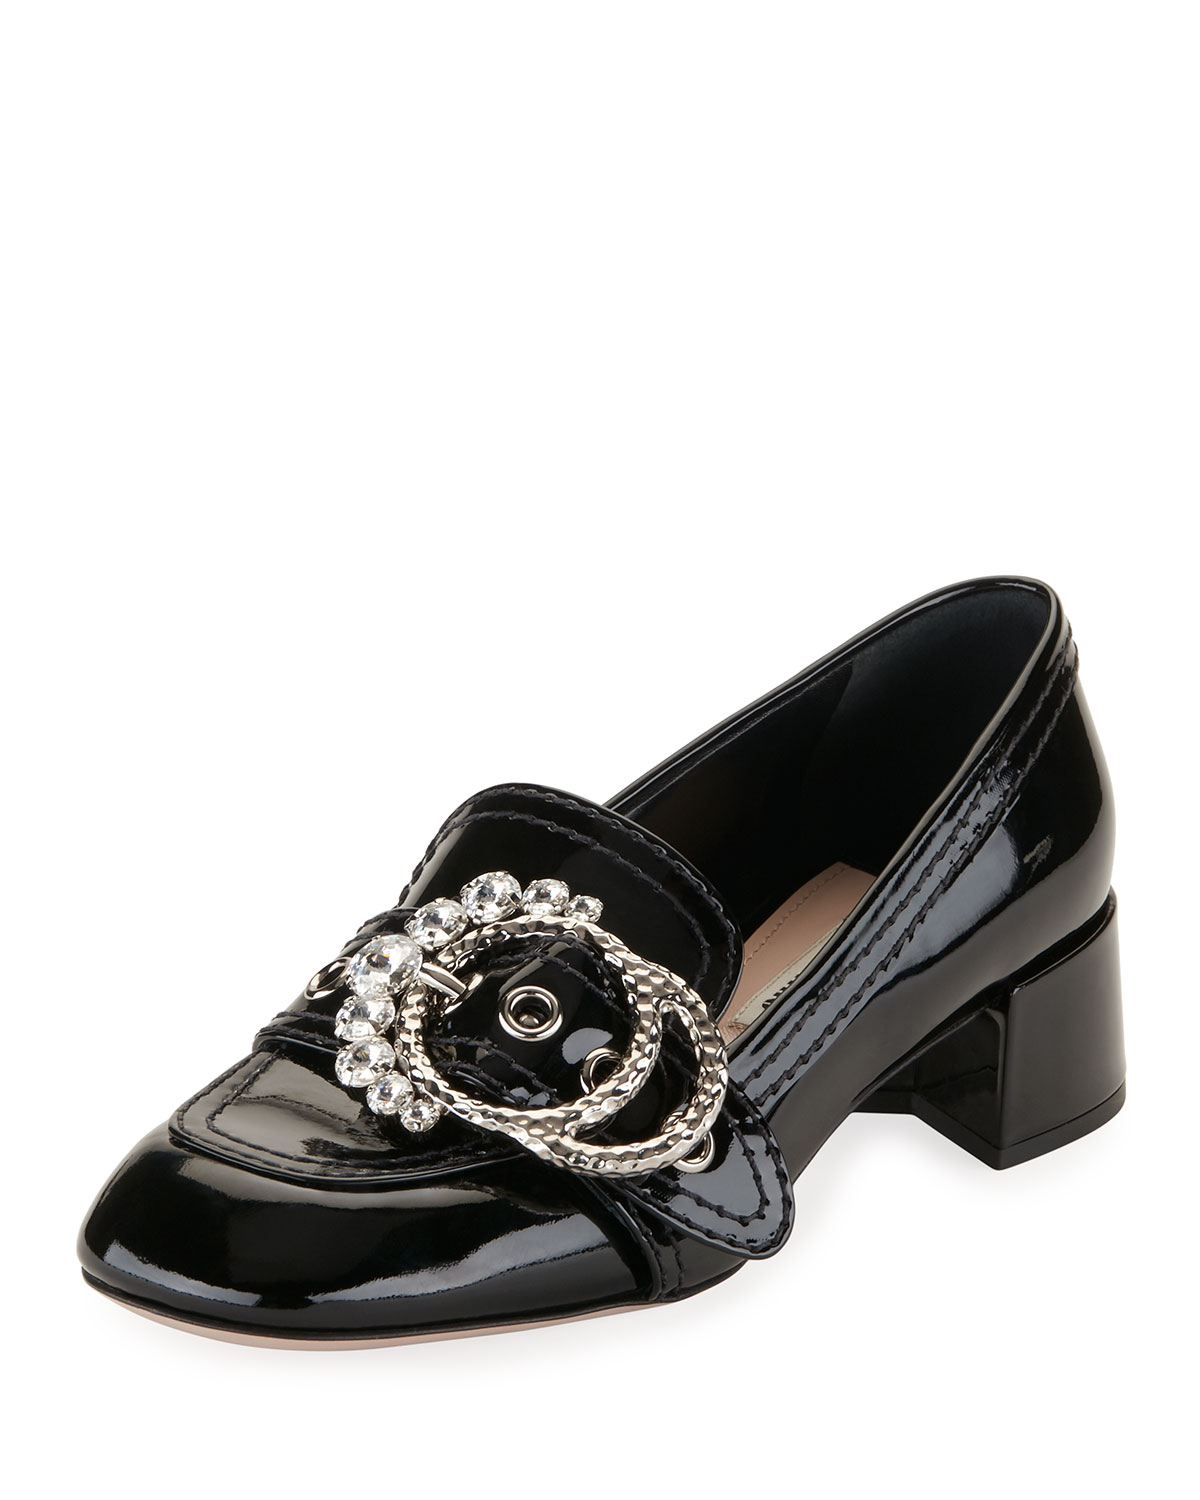 5365db8b2cfc Miu Miu Embellished-Buckle Patent Loafer Pump